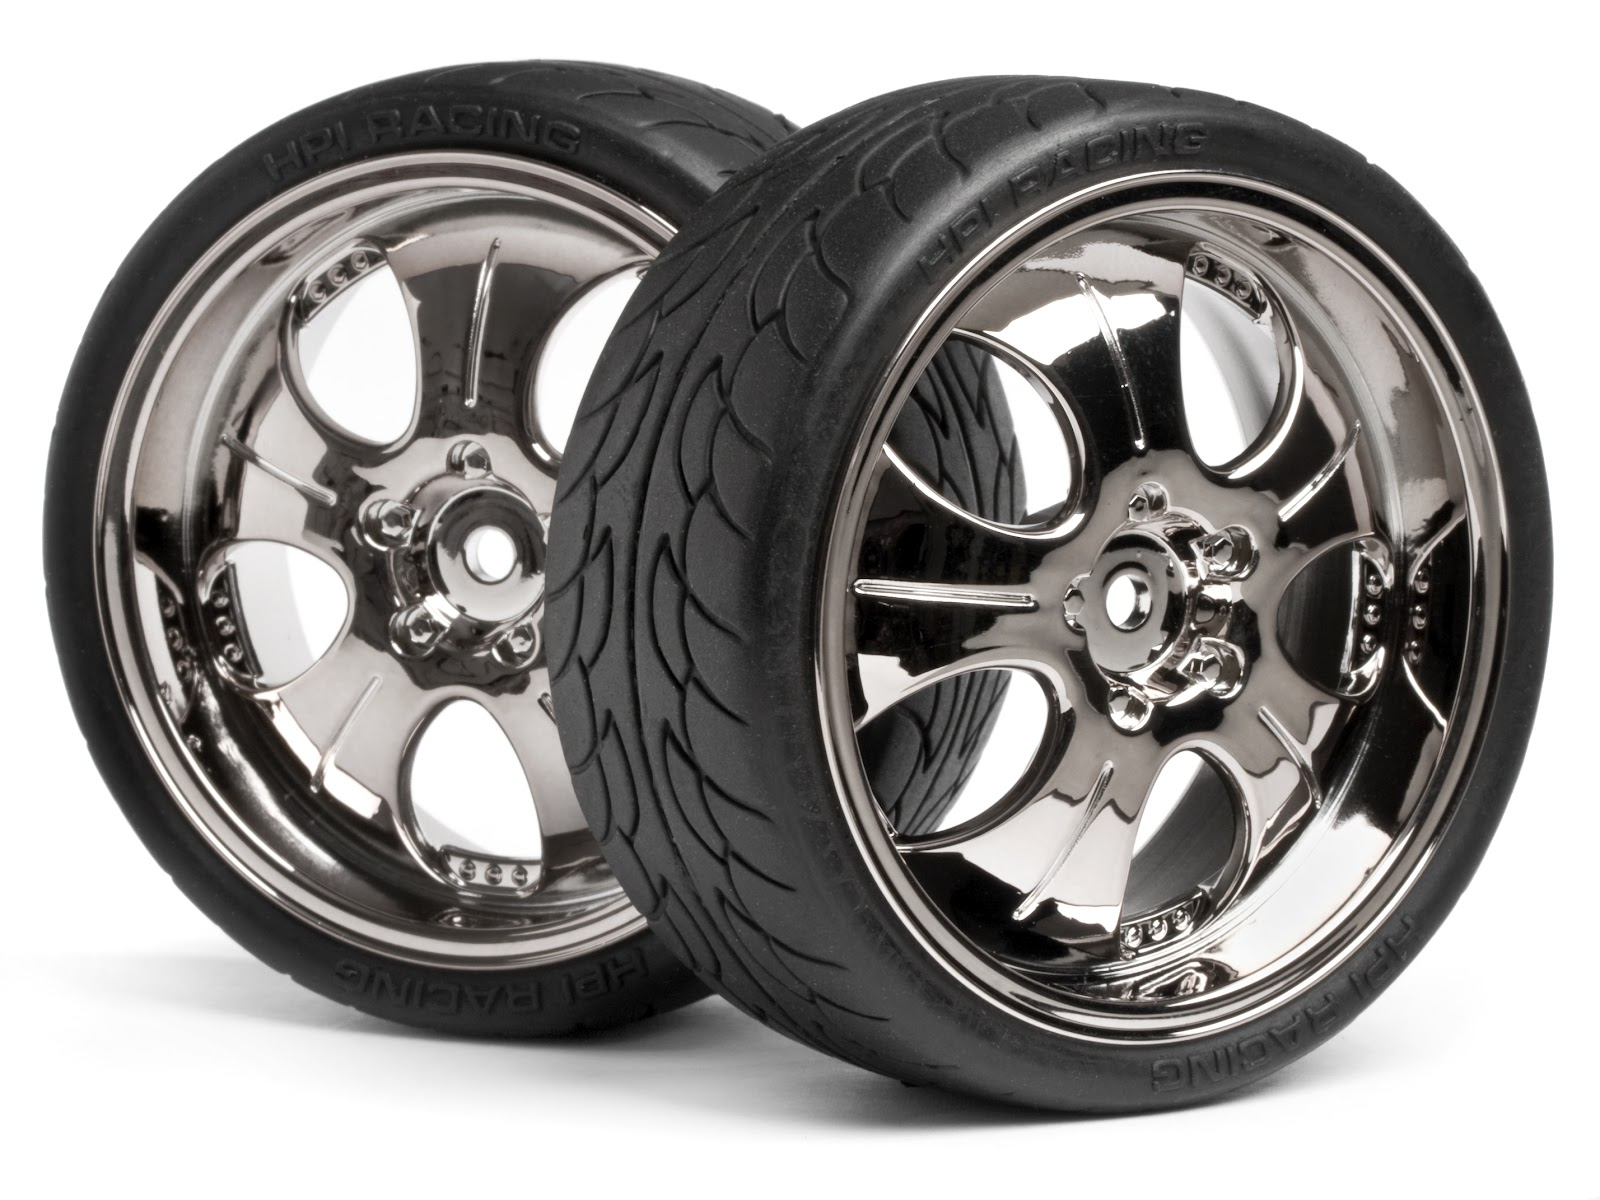 Low Profile Tires >> Ally on Cars: Changing tyres from low profile to regular